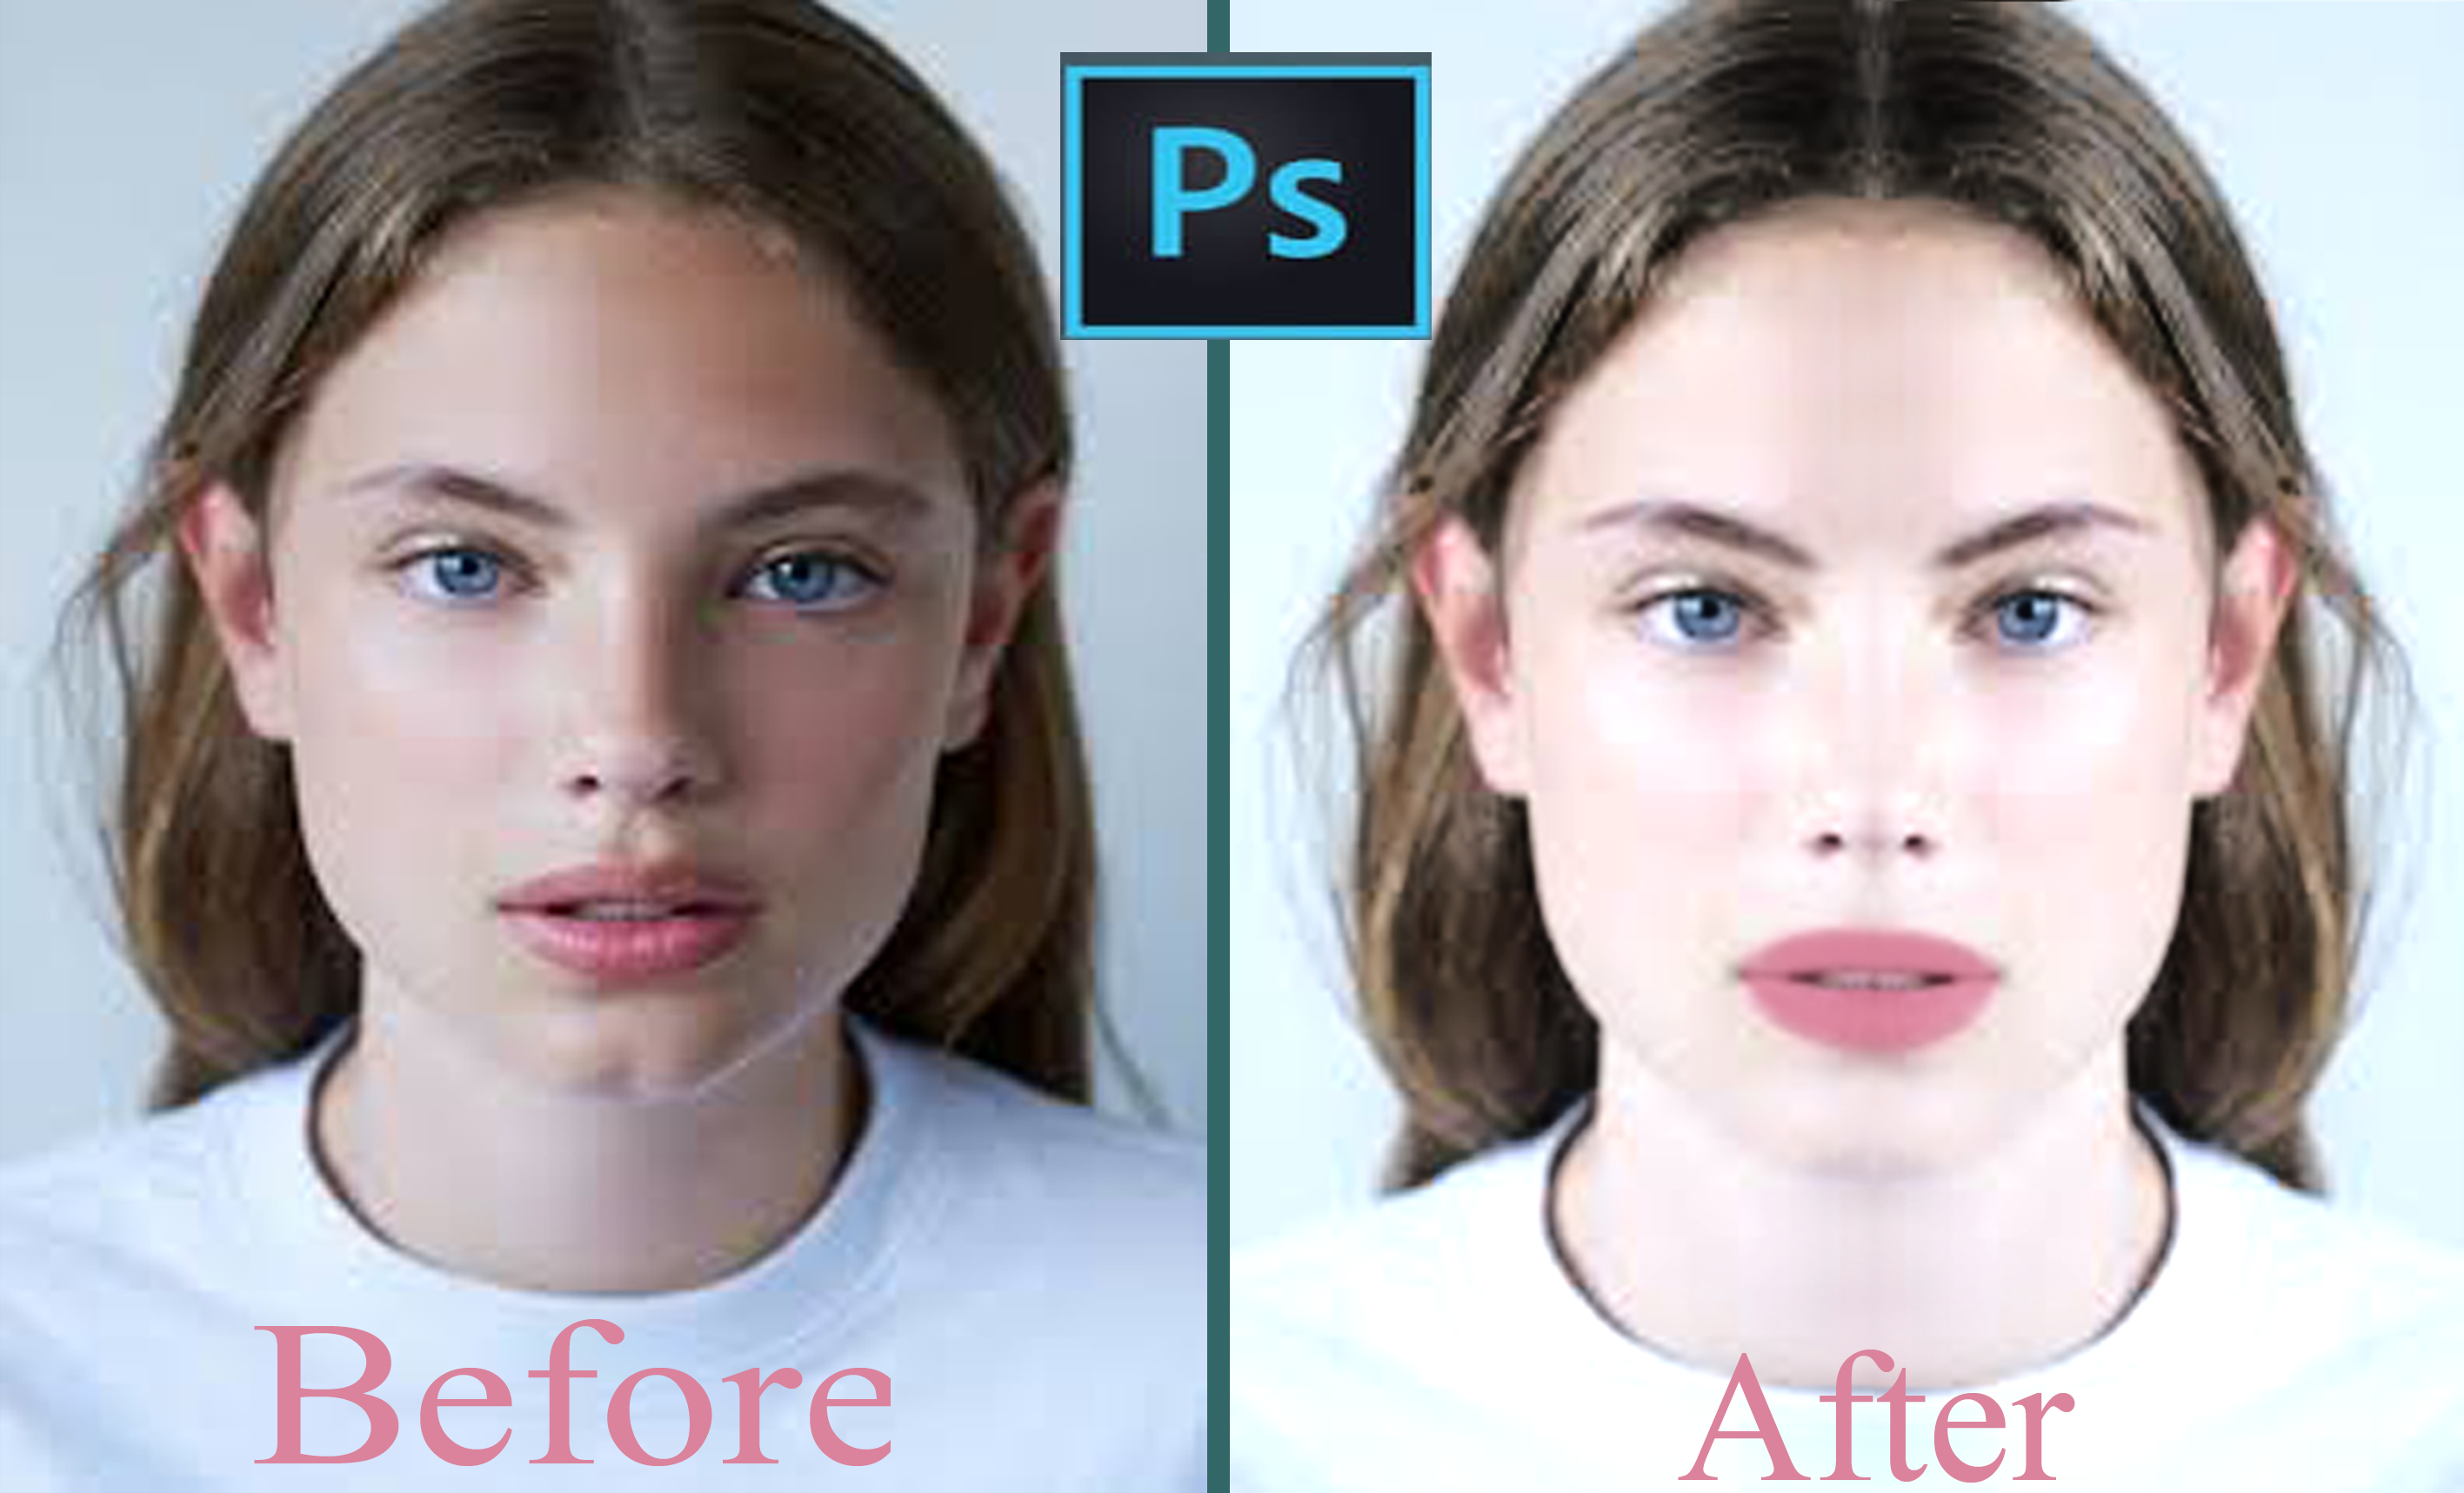 Hire expert graphics designer to change your photo